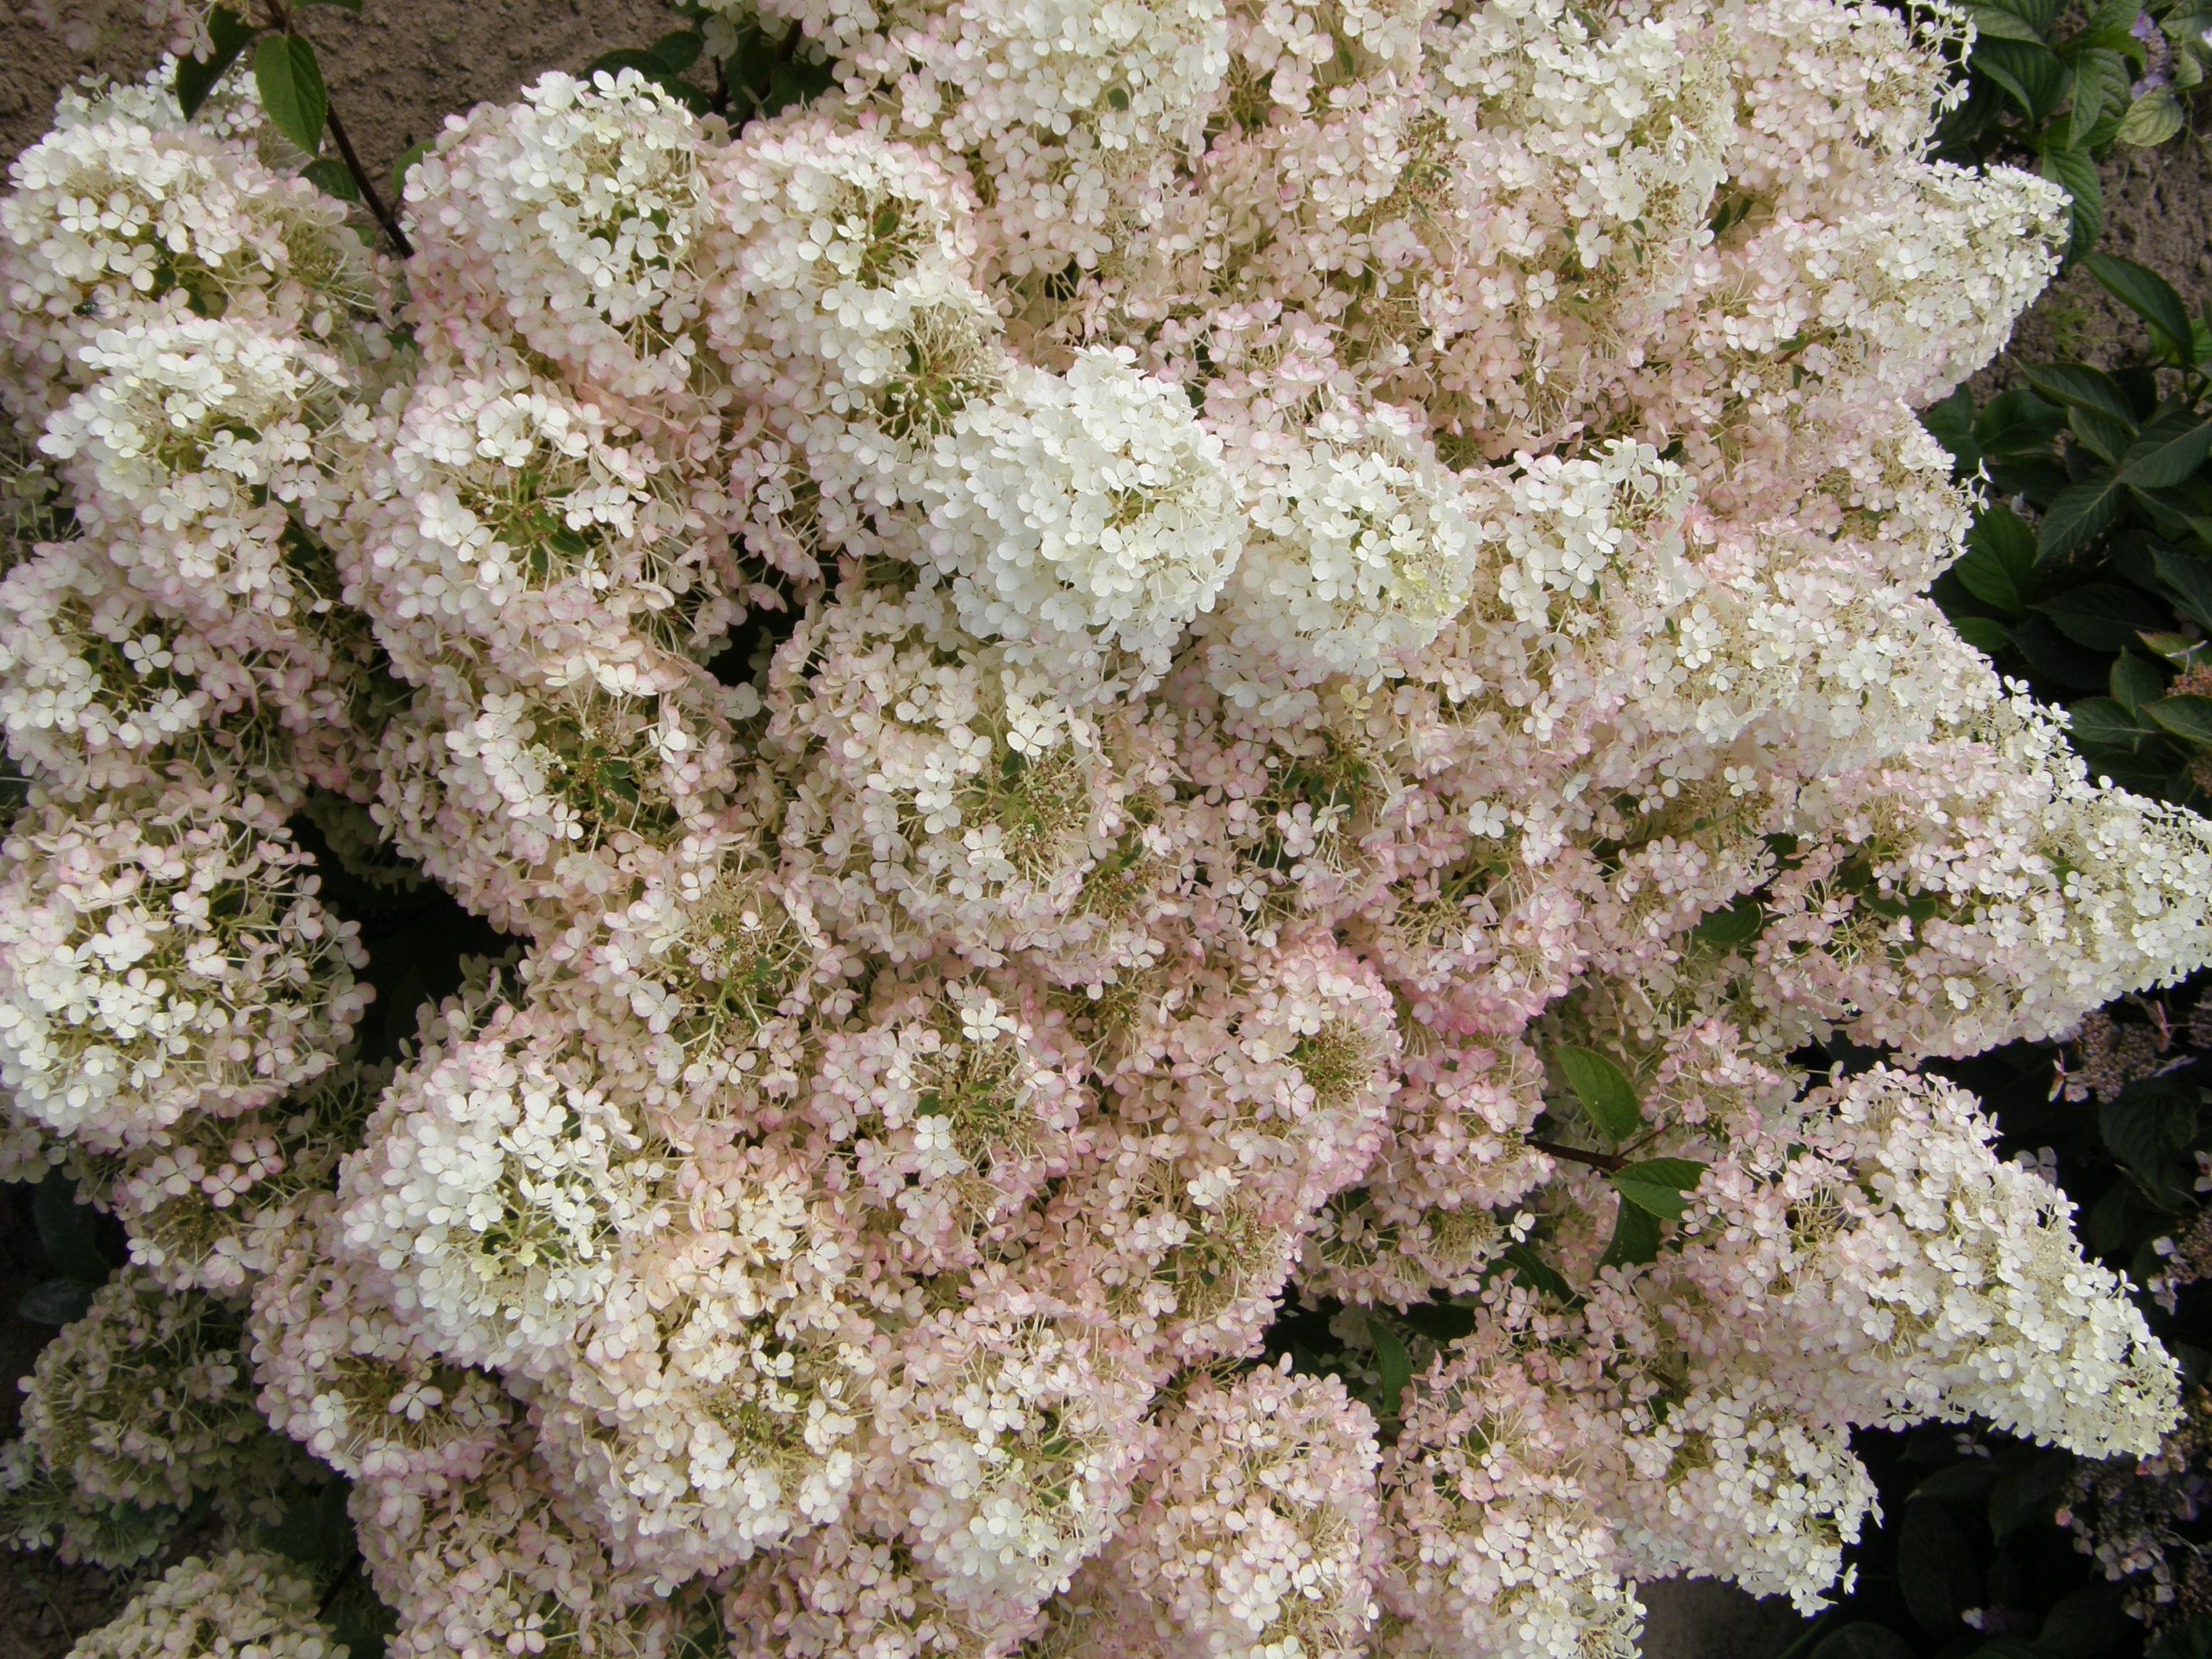 New dwarf variety, Bobo® Hardy Hydrangea - Monrovia - Zones 3-9, 3ft tall & wide, creamy white flowers that may turn pink in fall, blooms until the first frost.